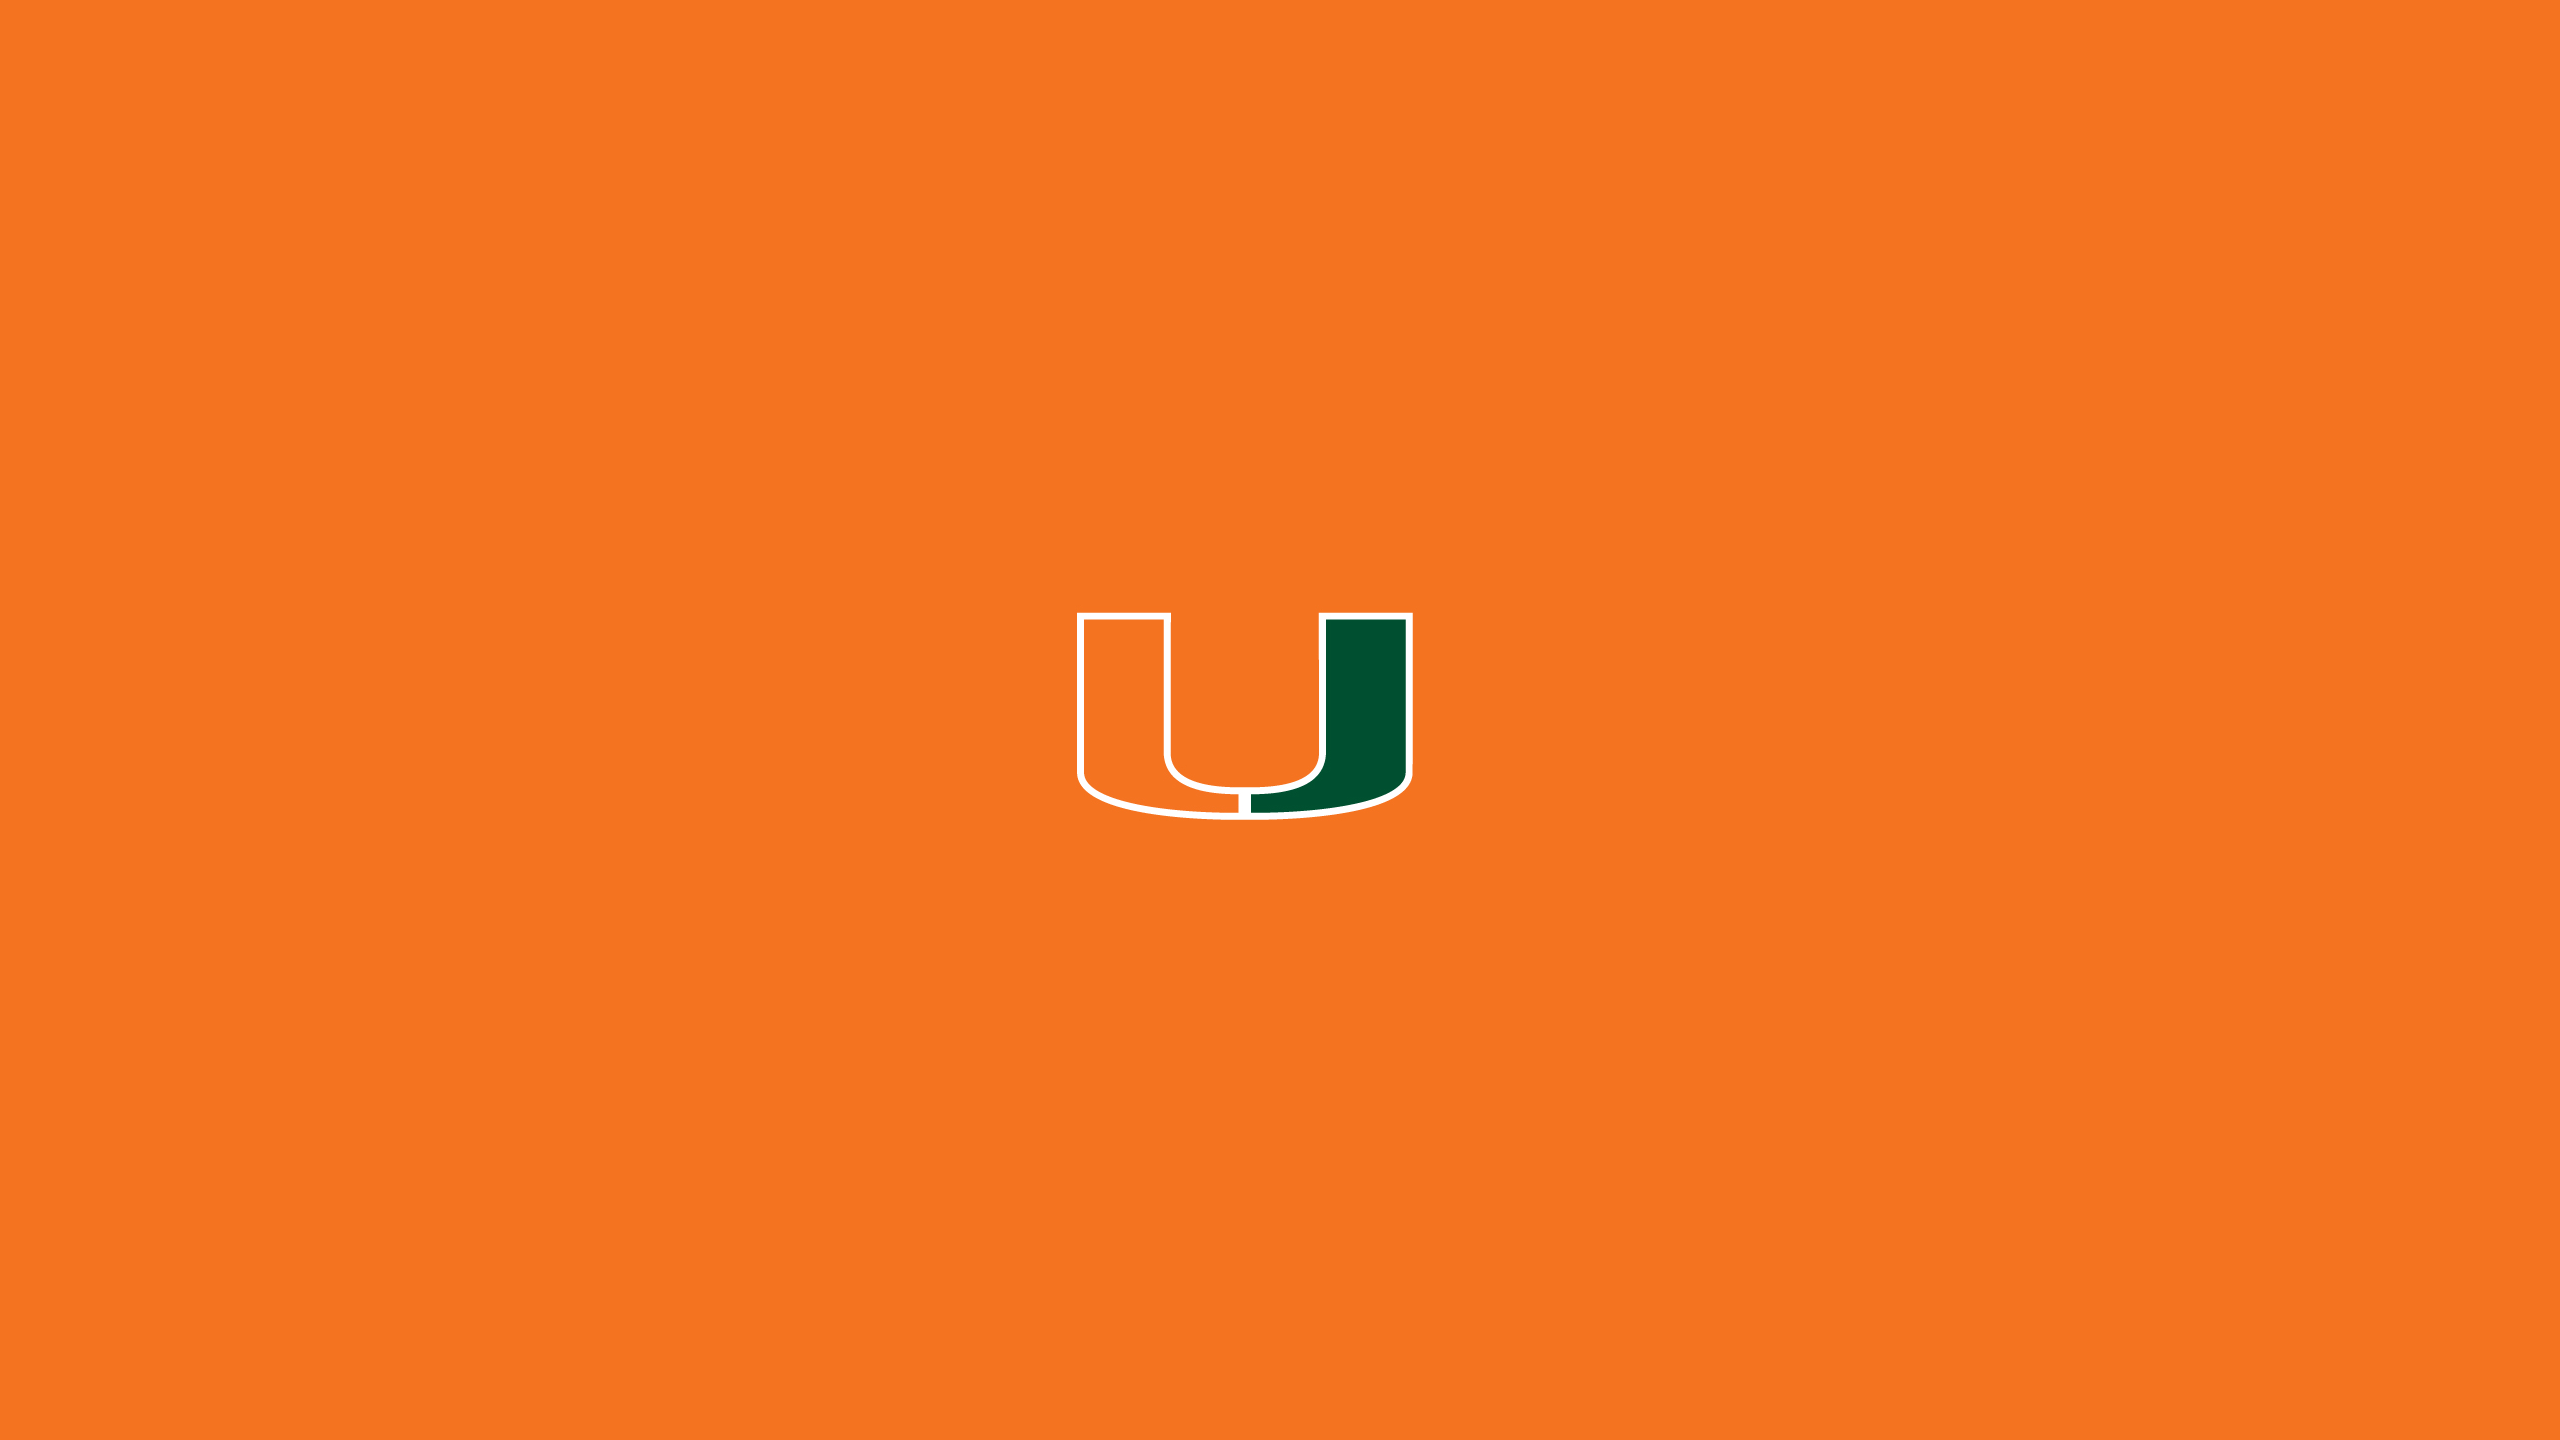 University of Miami Logo Wallpaper - WallpaperSafari